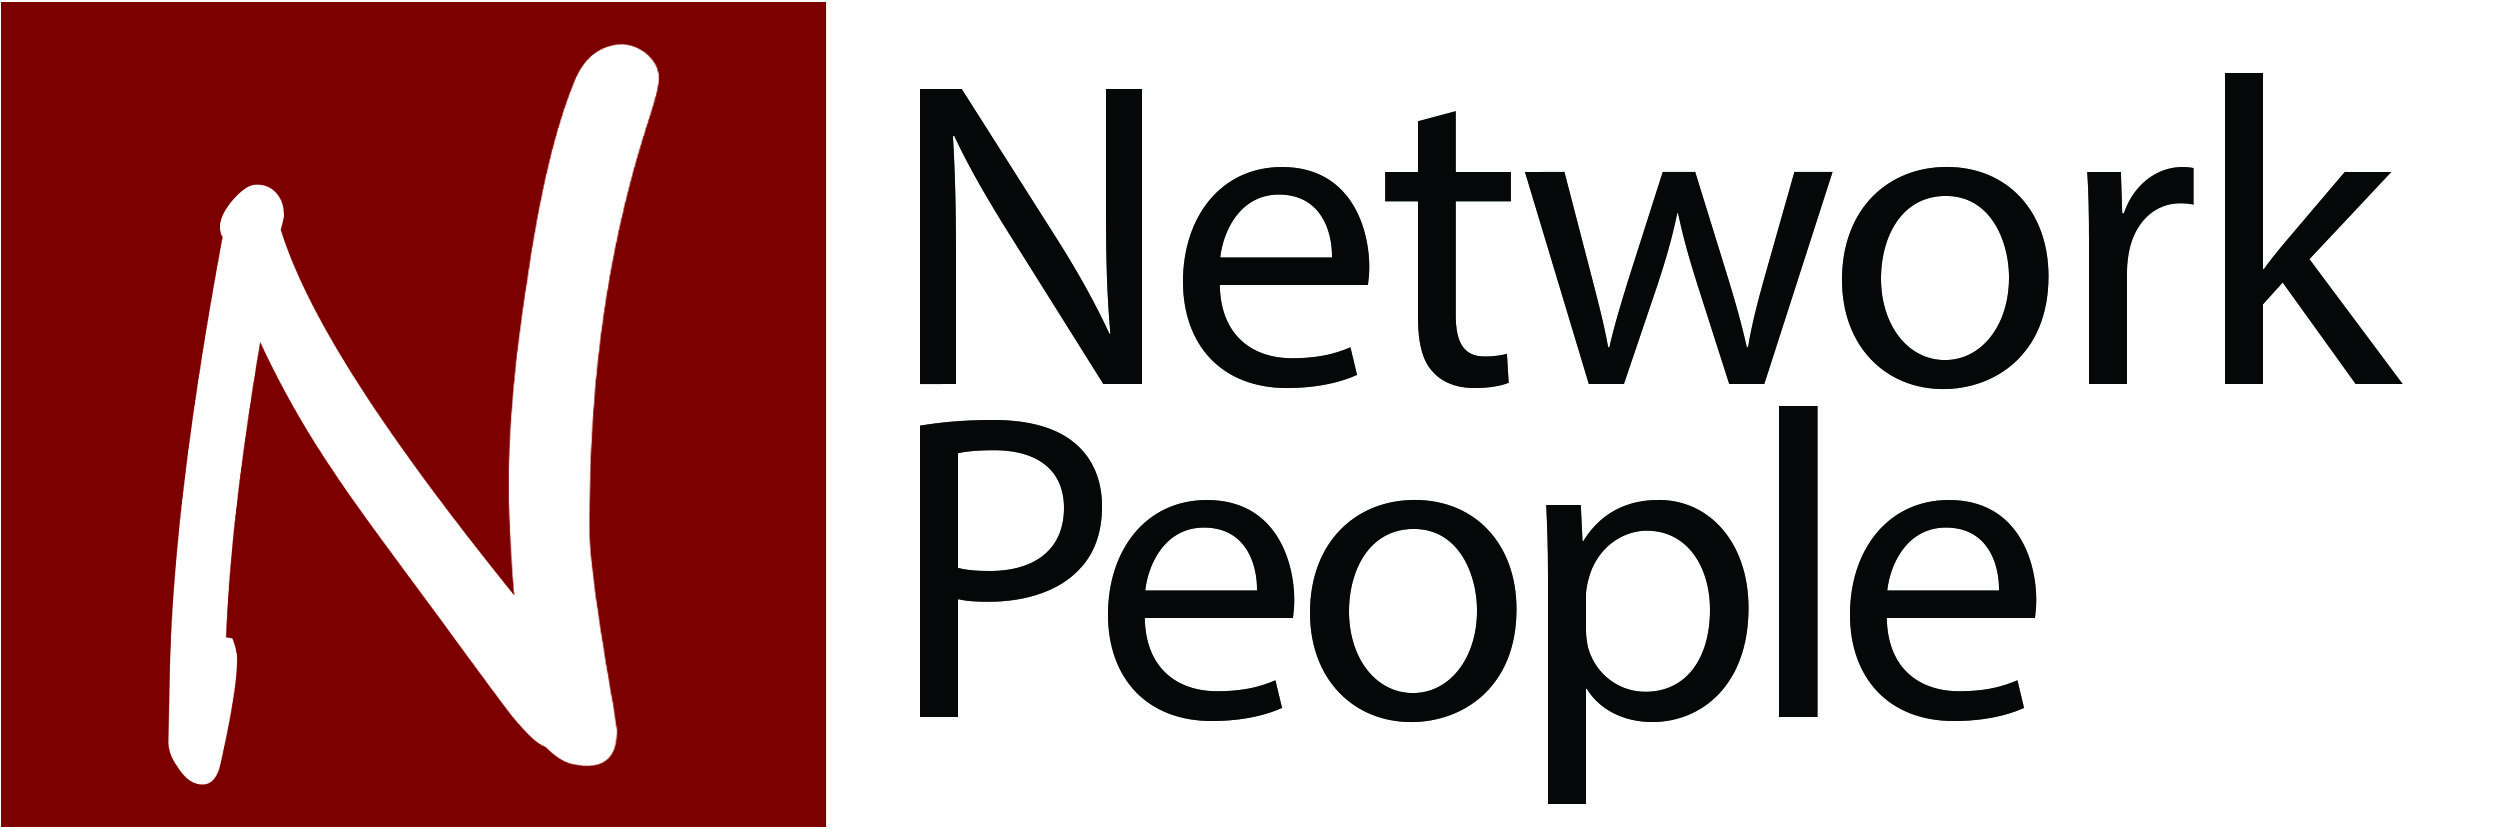 Network People